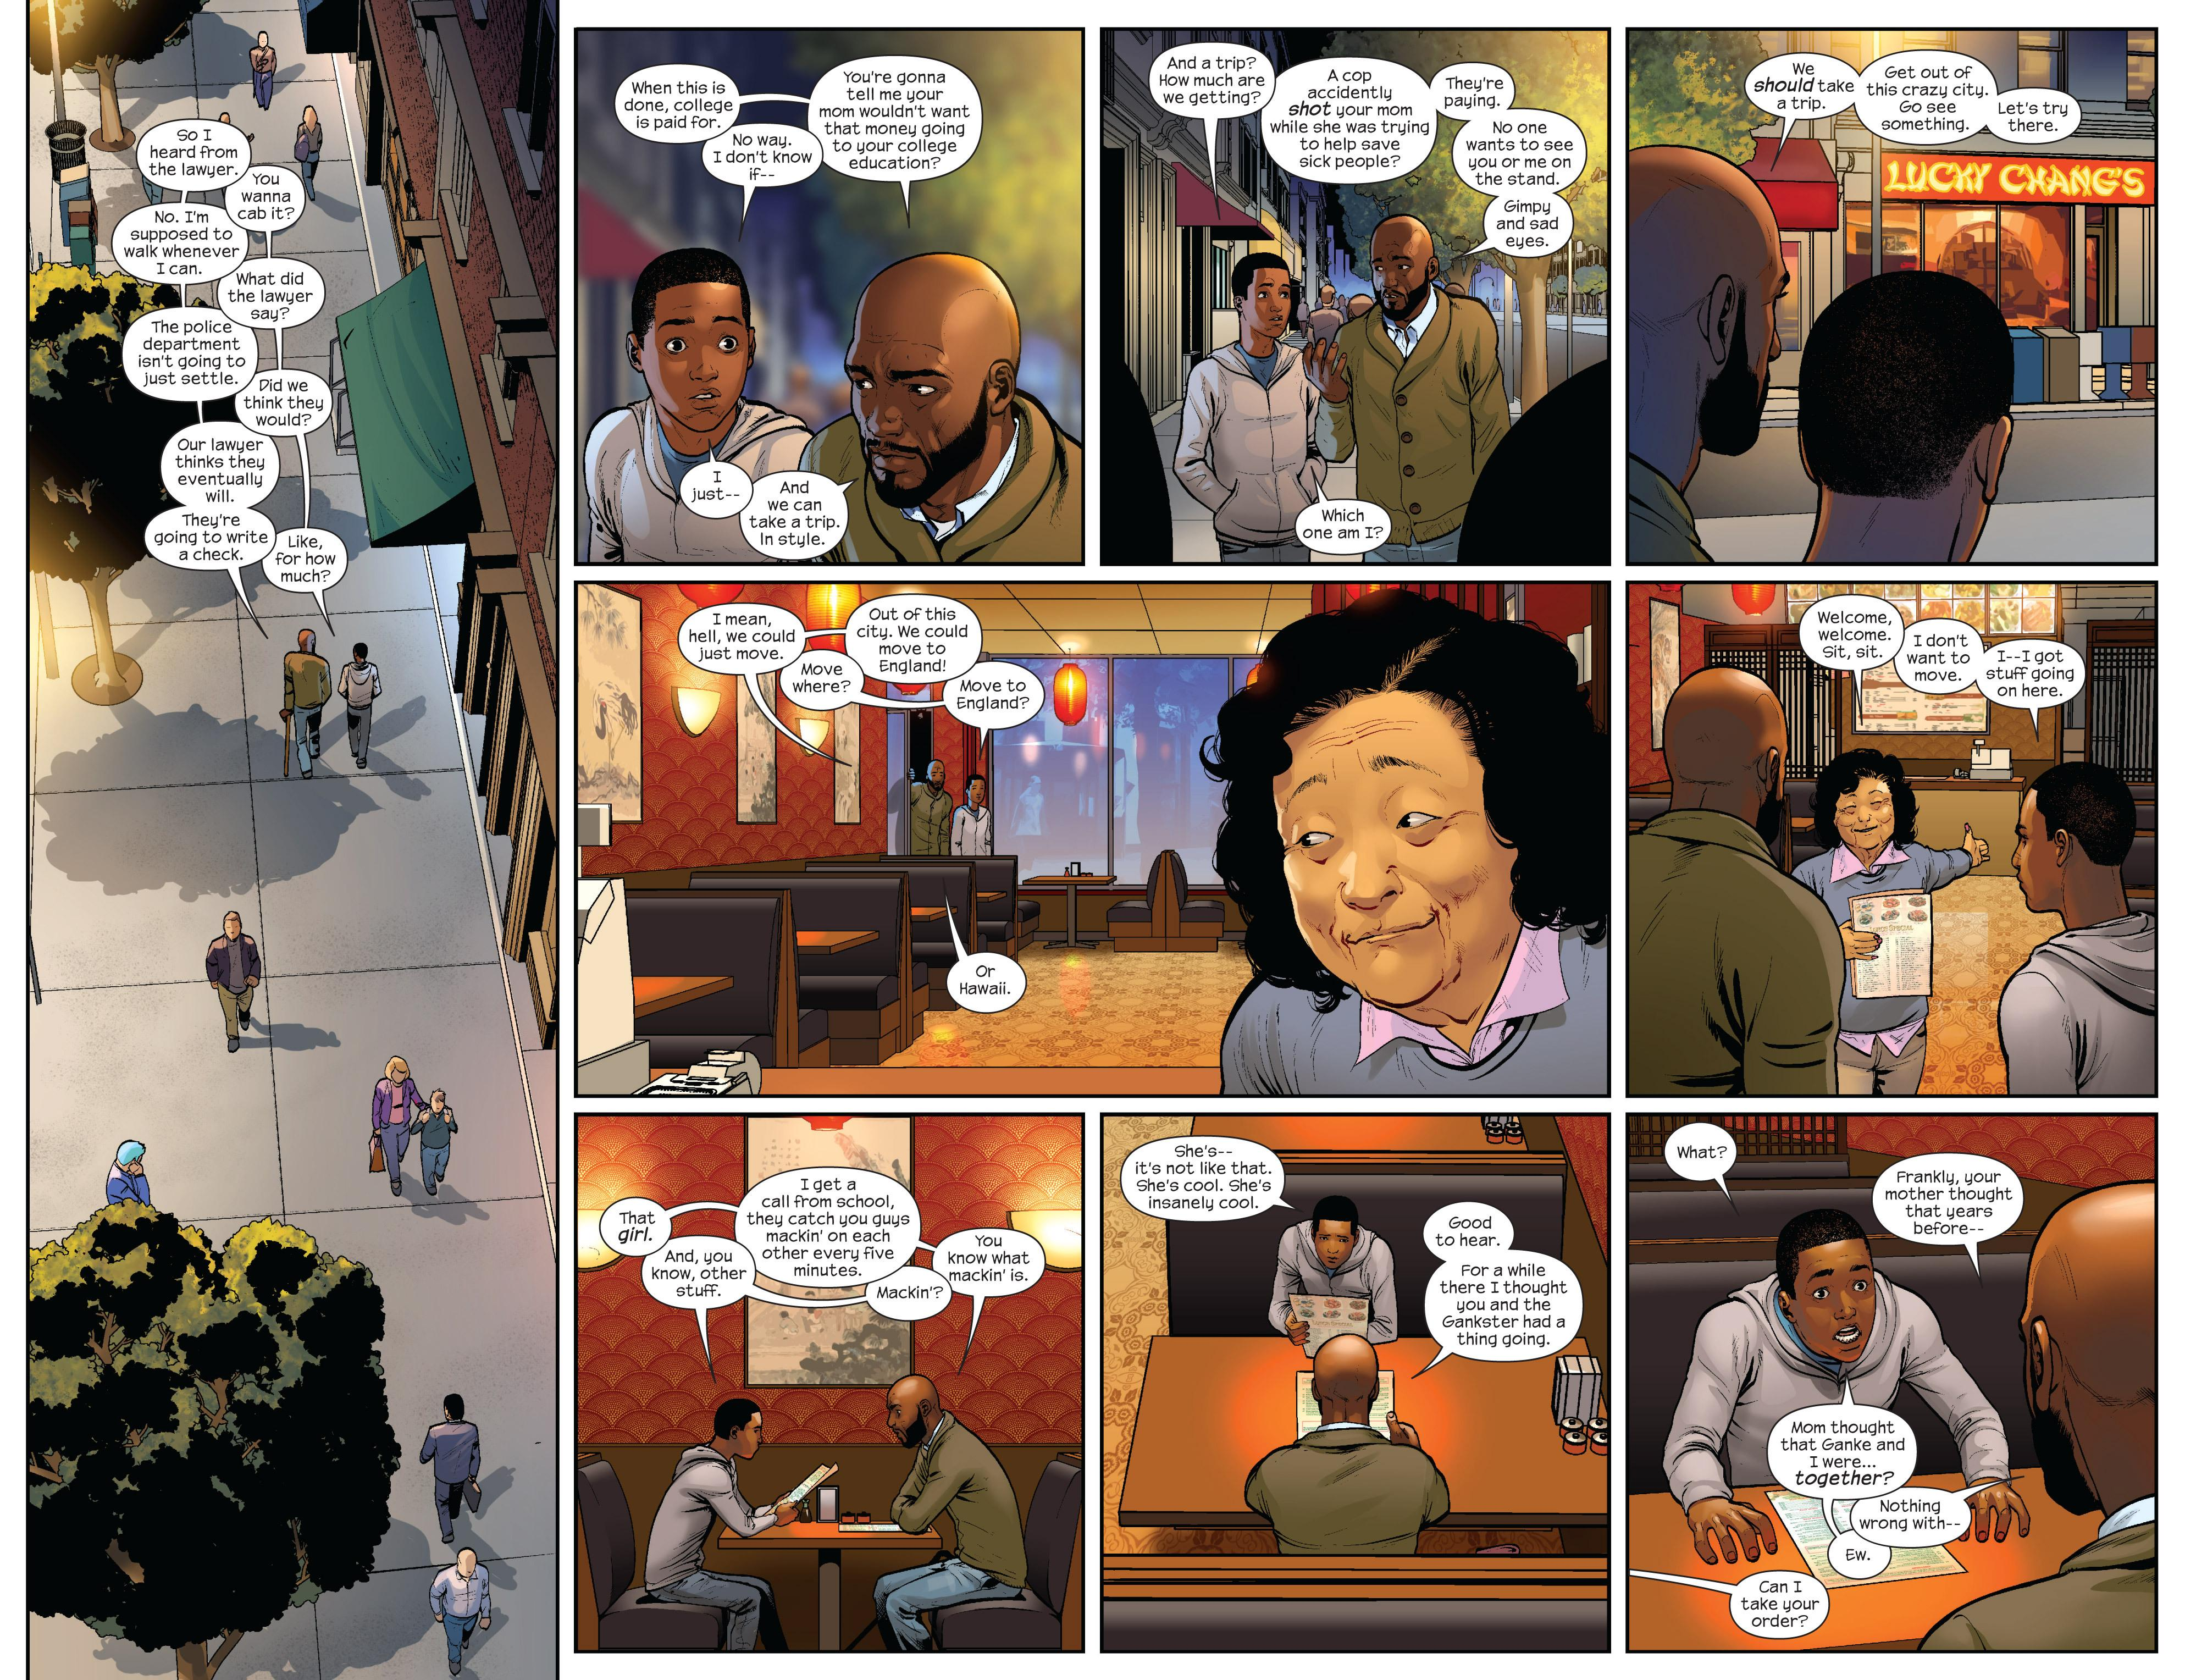 Ultimate Comics Spider-Man V5 review